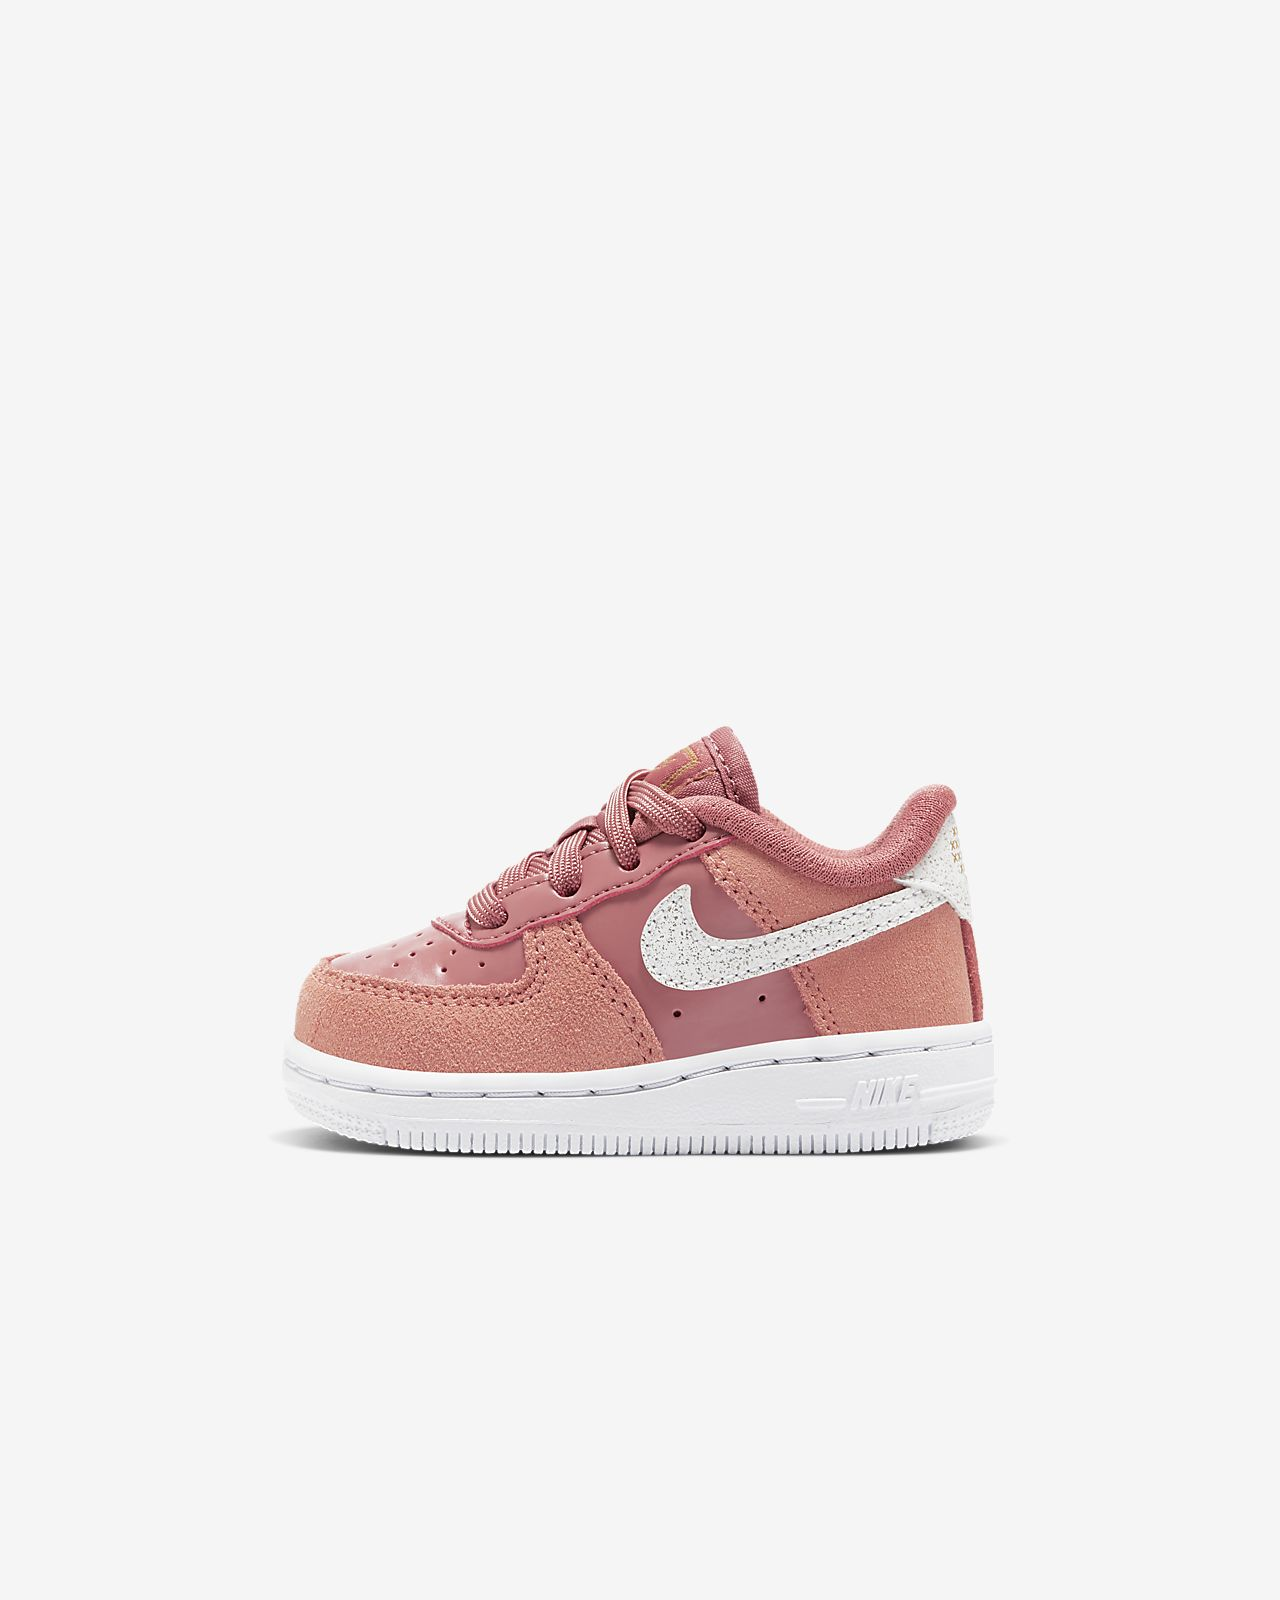 Nike Force 1 LV8 Valentine's Day Baby/Toddler Shoe